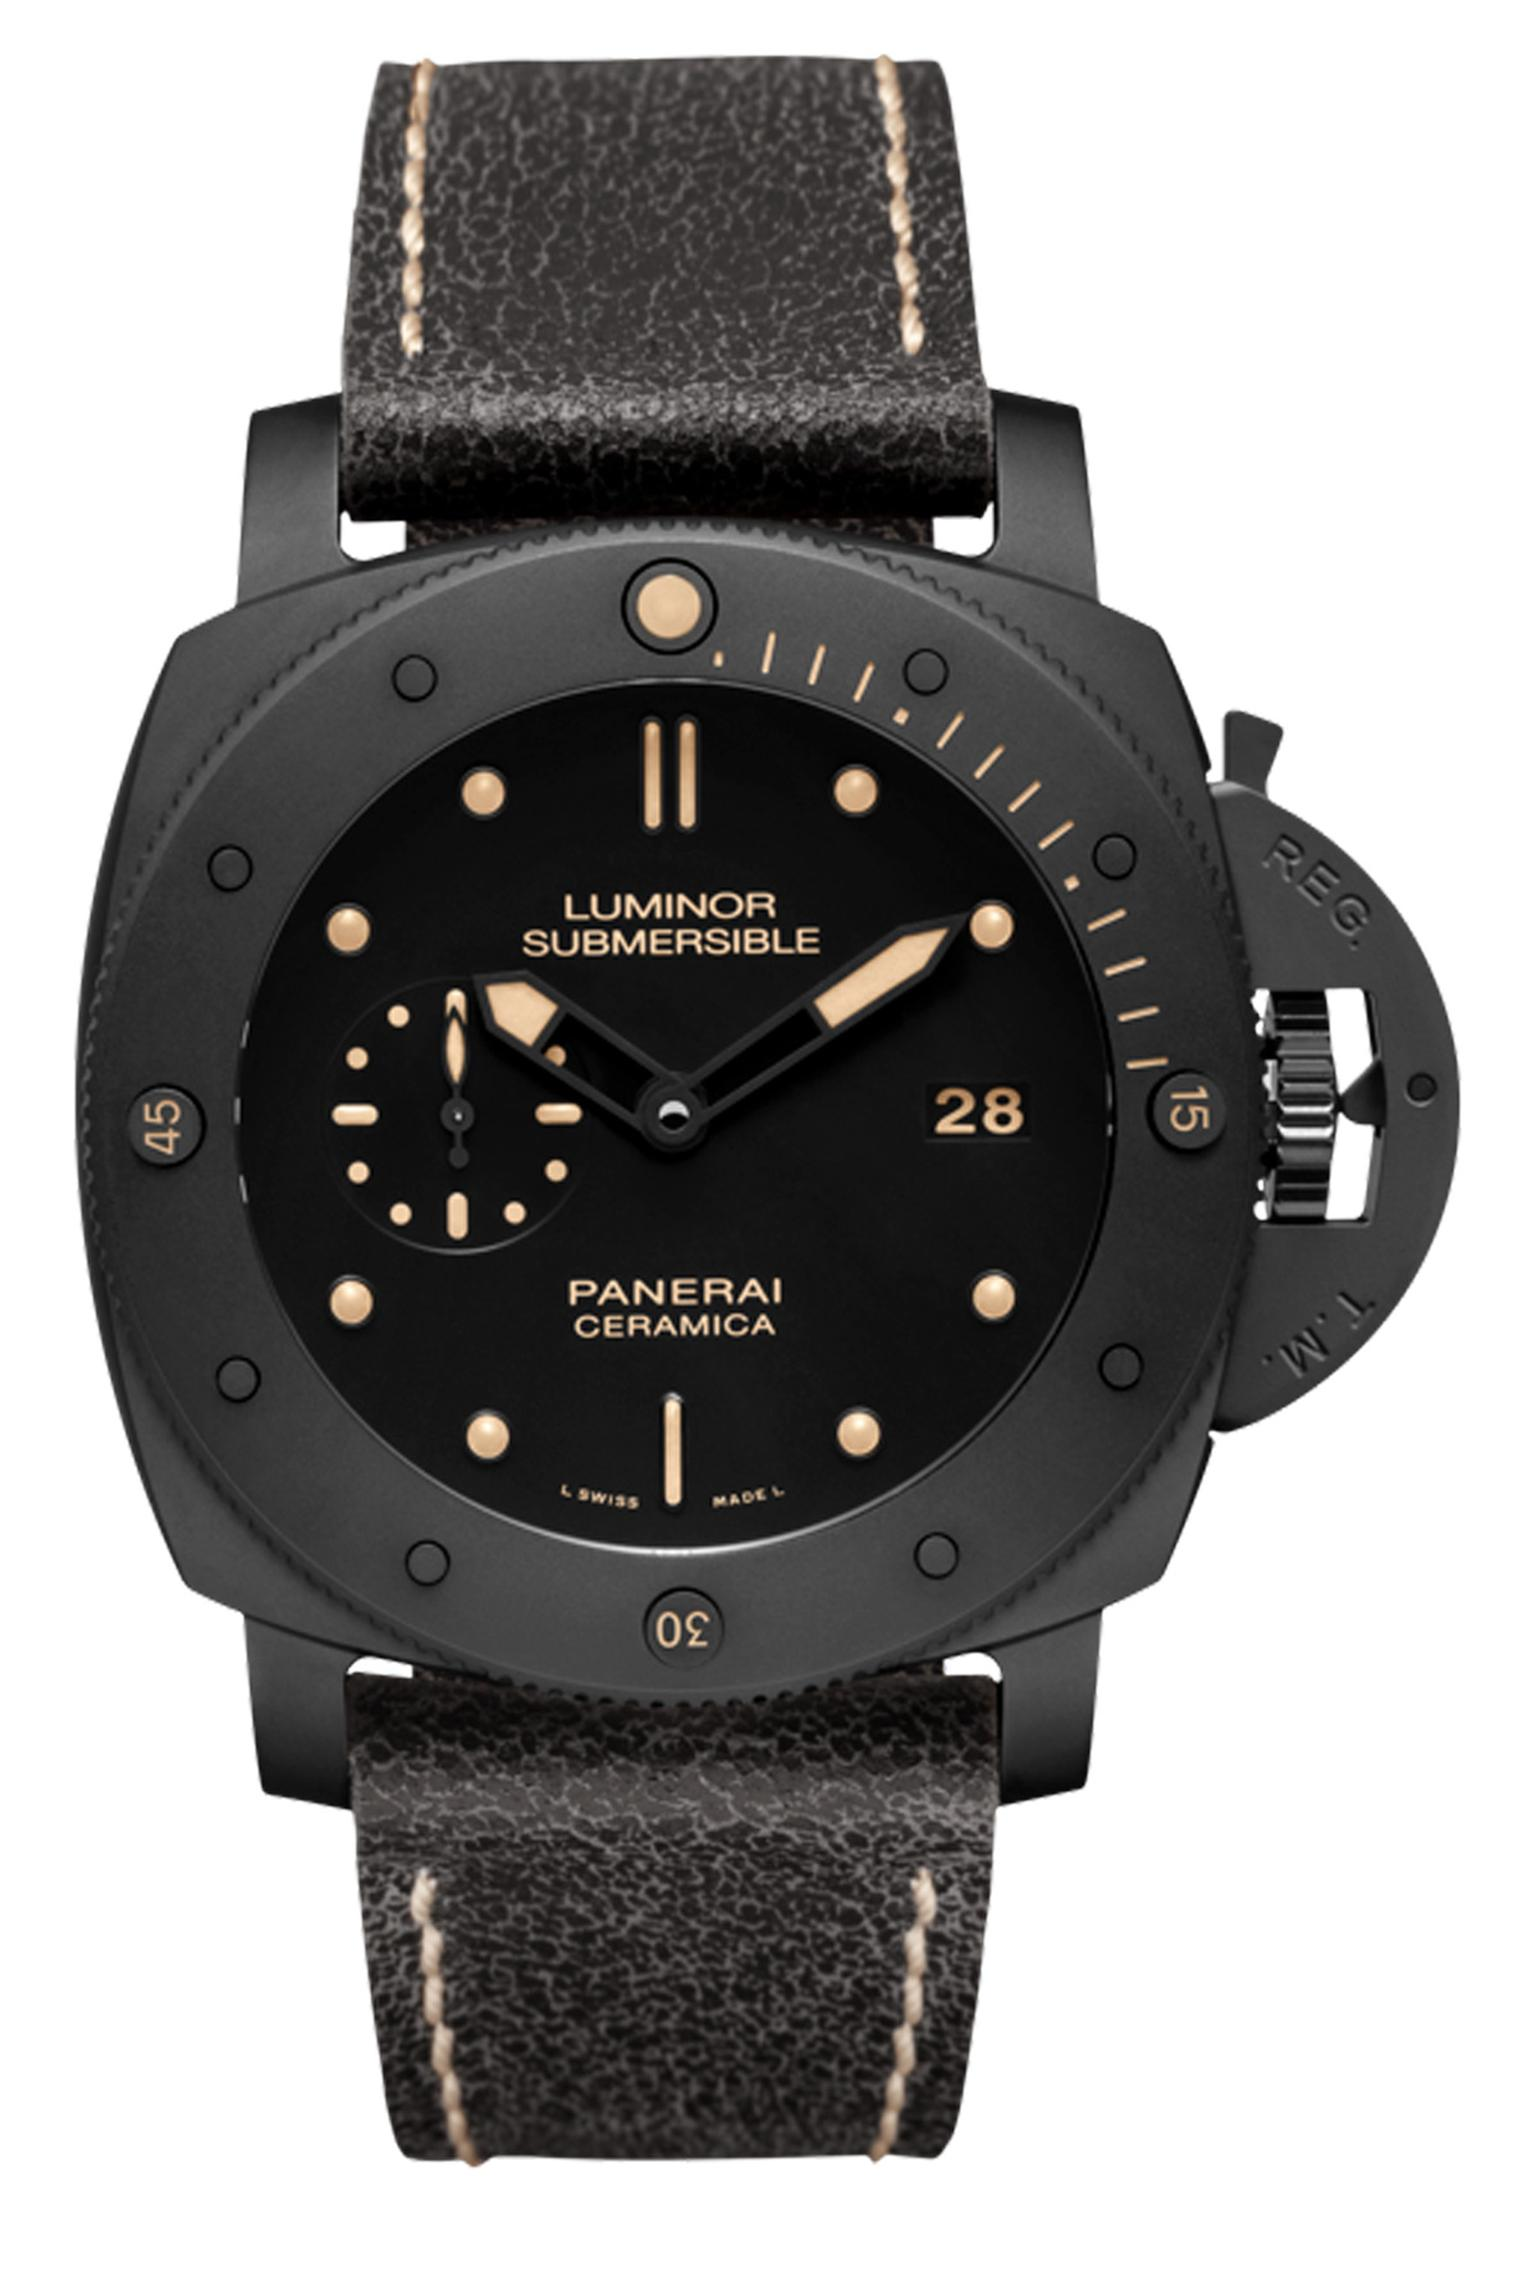 Panerai Luminor Submersible 1950 Ceramica watch_20130404_Zoom_1200